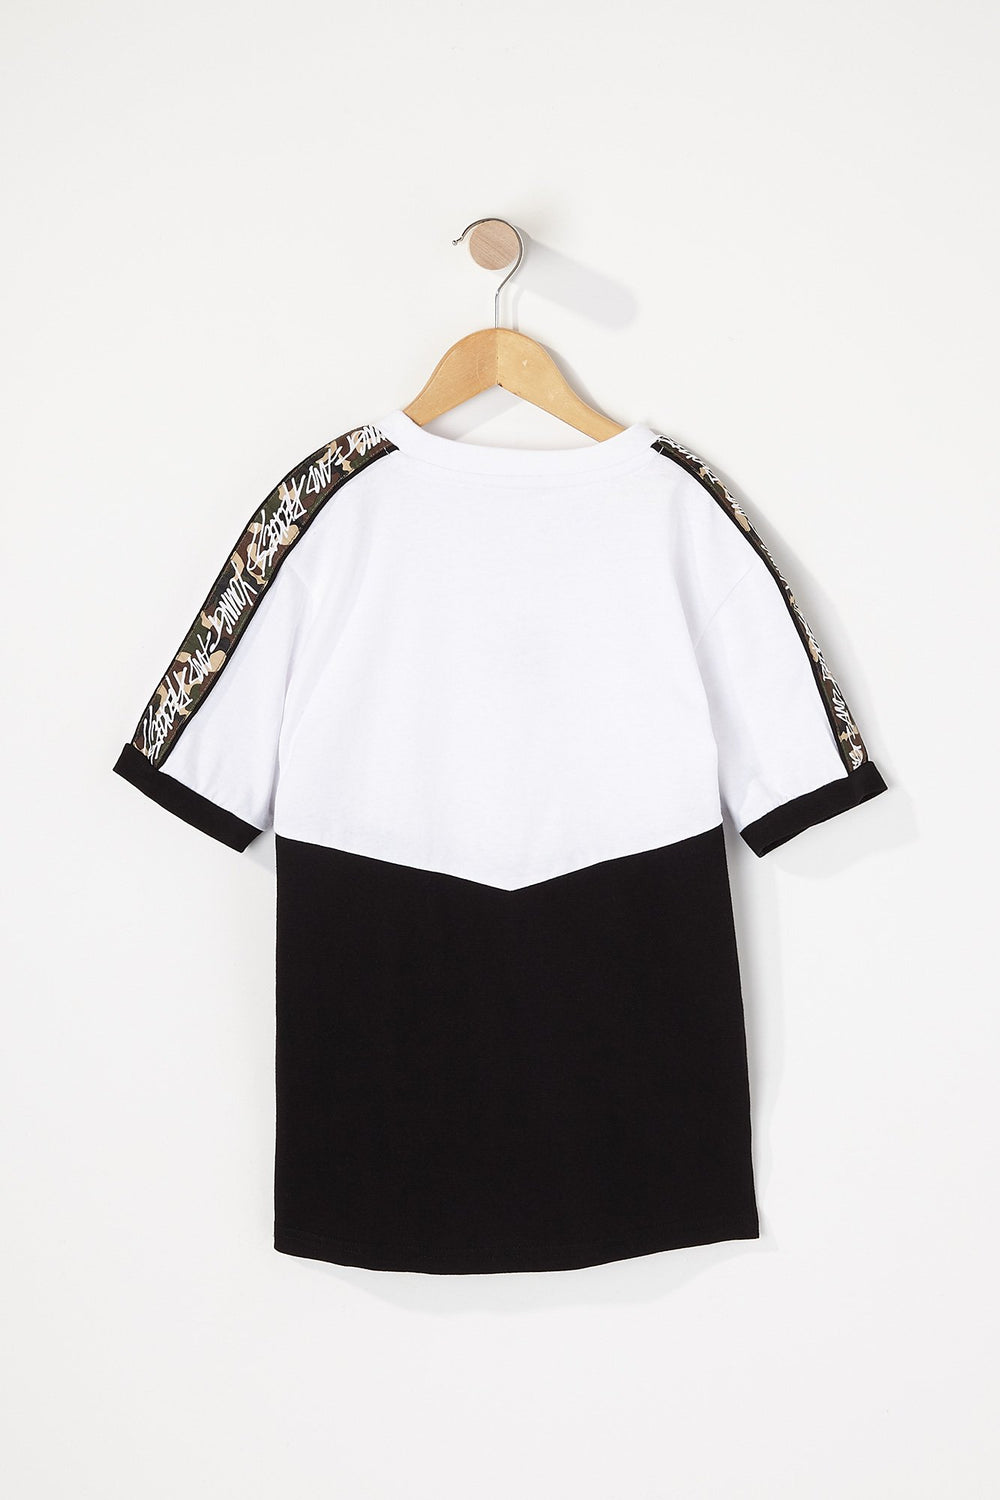 Young & Reckless Boys Camo Sleeve Tape T-Shirt White